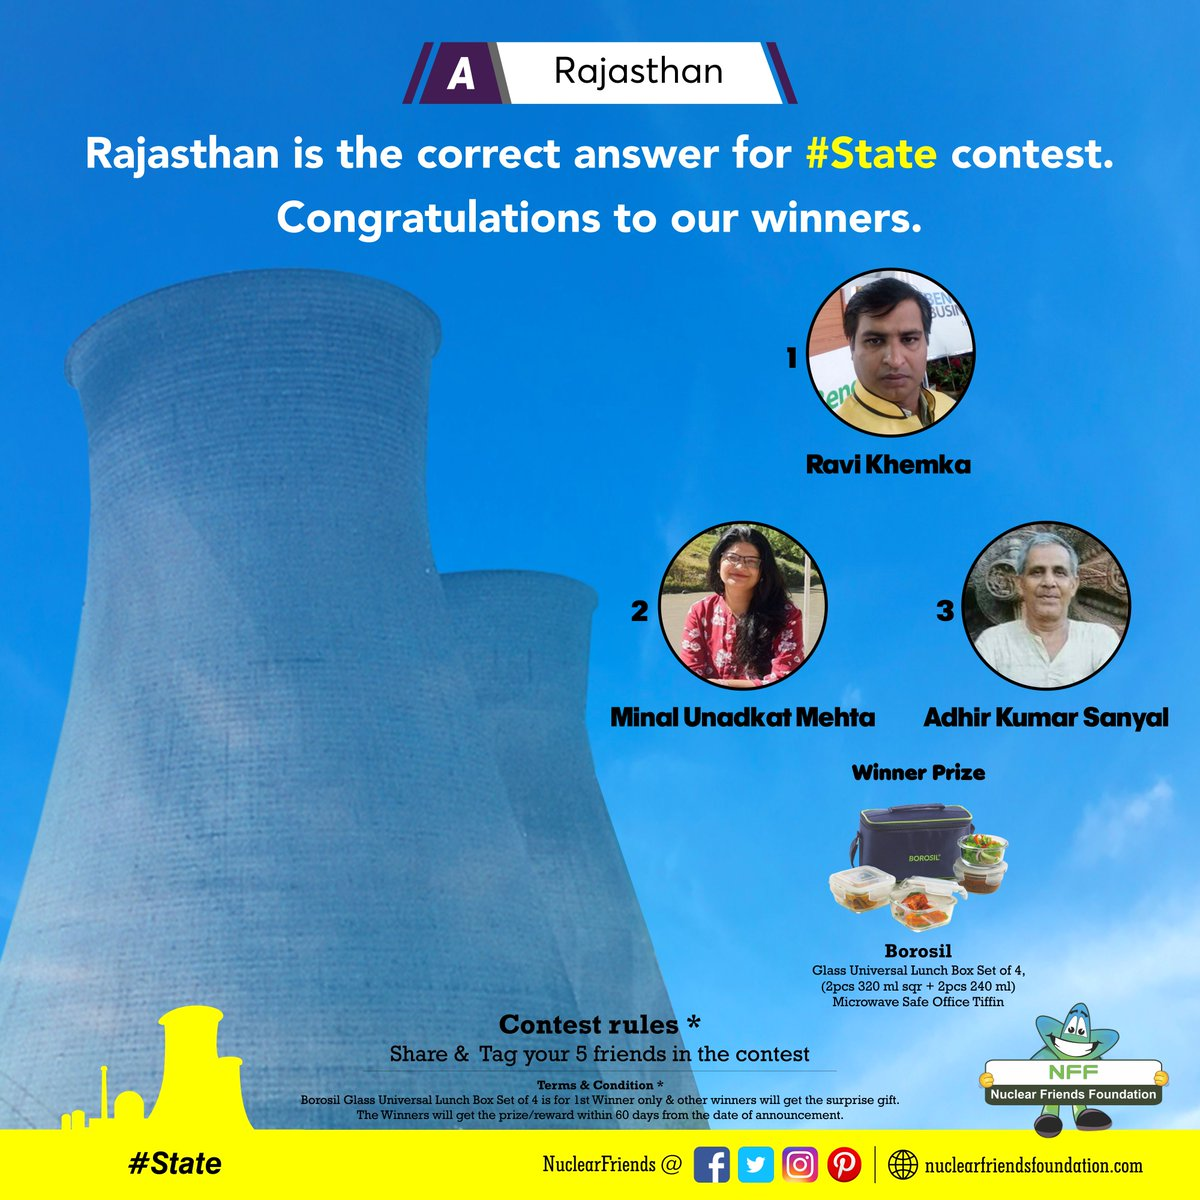 #ContestWinner A. Rajasthan option is the correct answer for #State contest. Congratulations to our winners.  Reach us @ http://nuclearfriendsfoundation.com  #Contest #like #RT #comment  #Win #prizes #Today #goodluck #giveaway #competition  #FridayFeeling #FridayThoughts #Mahashivratri